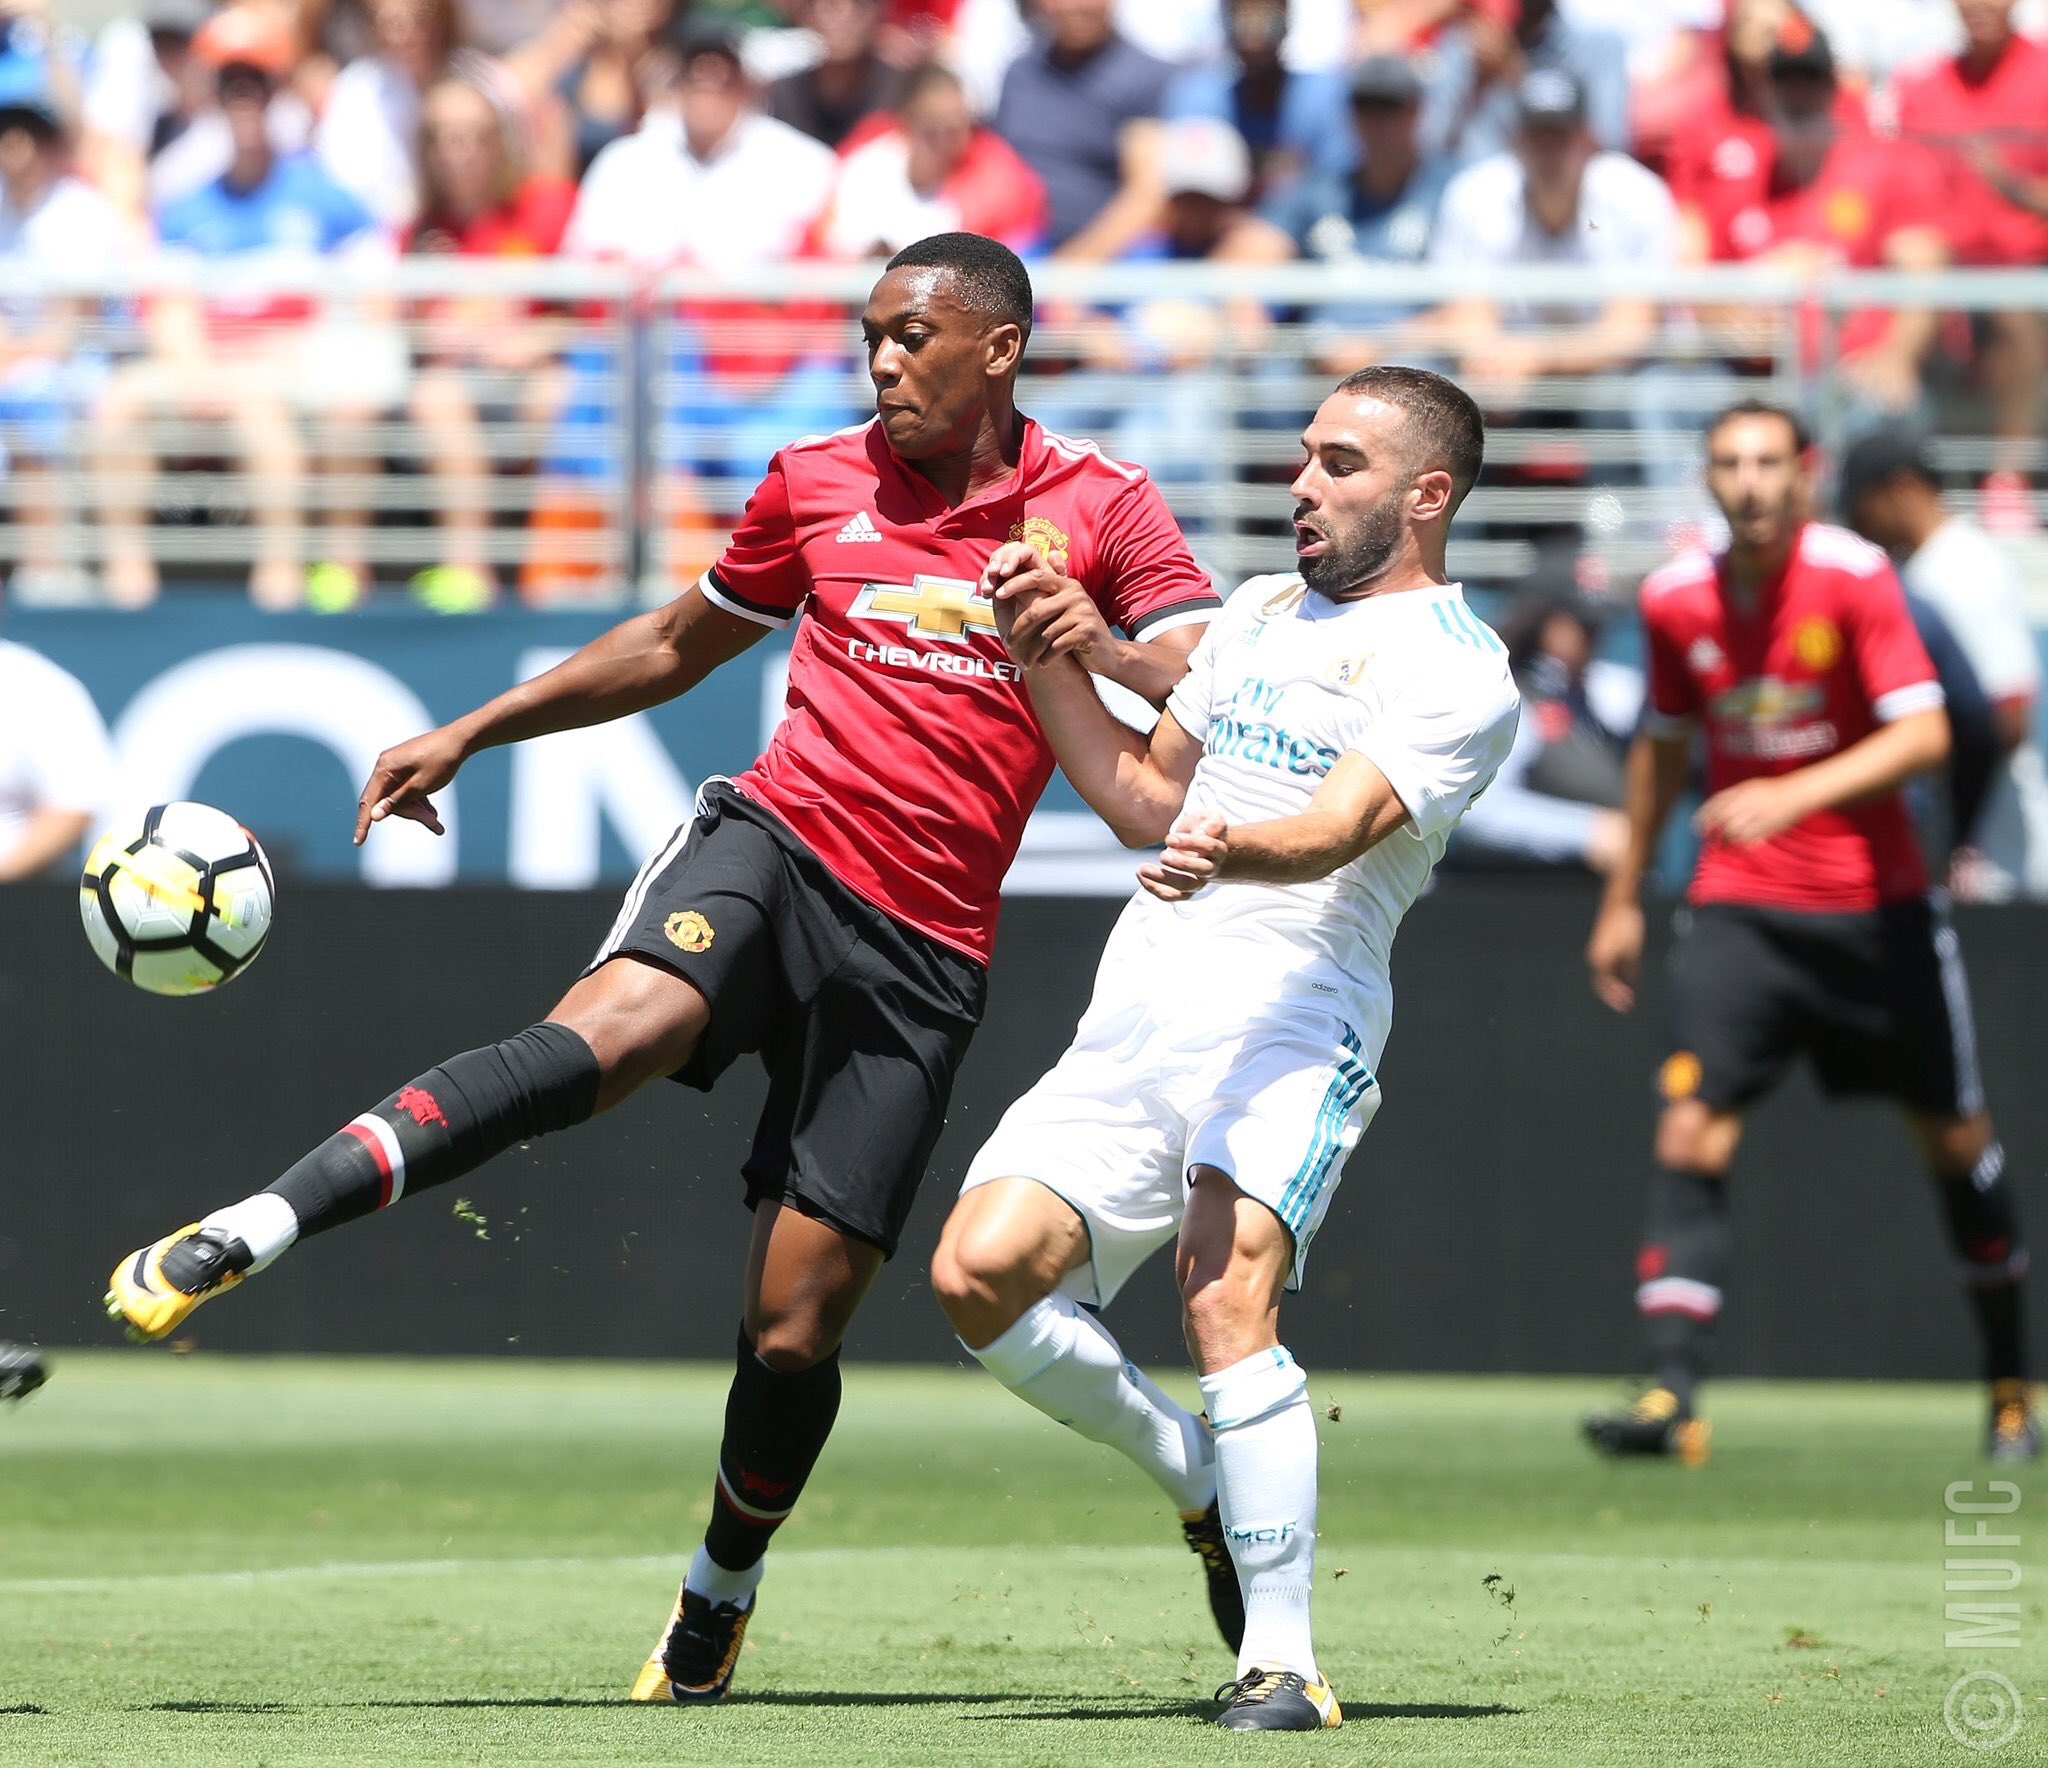 ICC: Martial Dazzles As Man United Edge Out Real Madrid